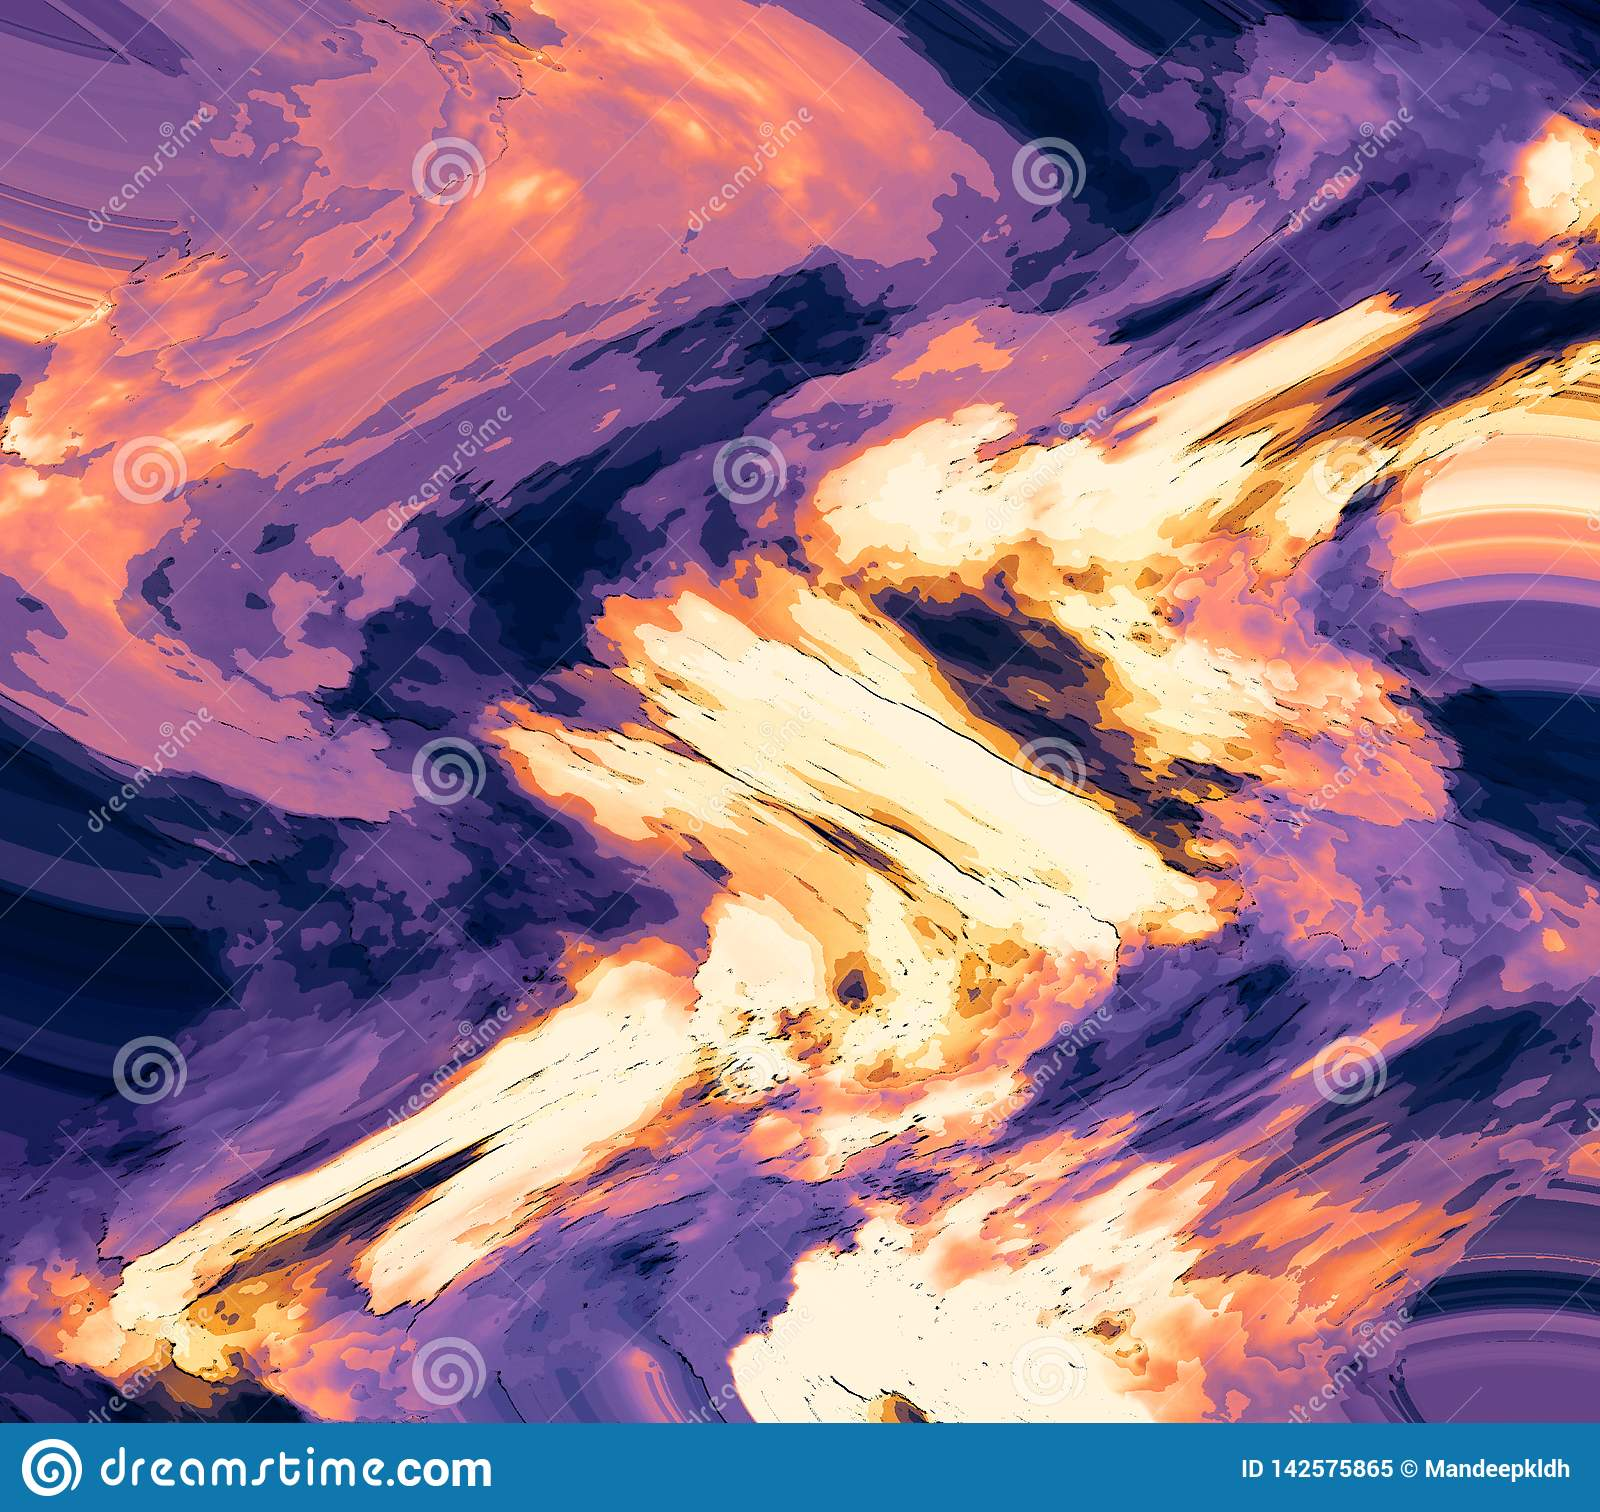 Pastel Color Clouds Scattered On Background Colorful Wallpaper Abstract Style Brush Strokes Artwork Stock Illustration Illustration Of Disney Celebration 142575865